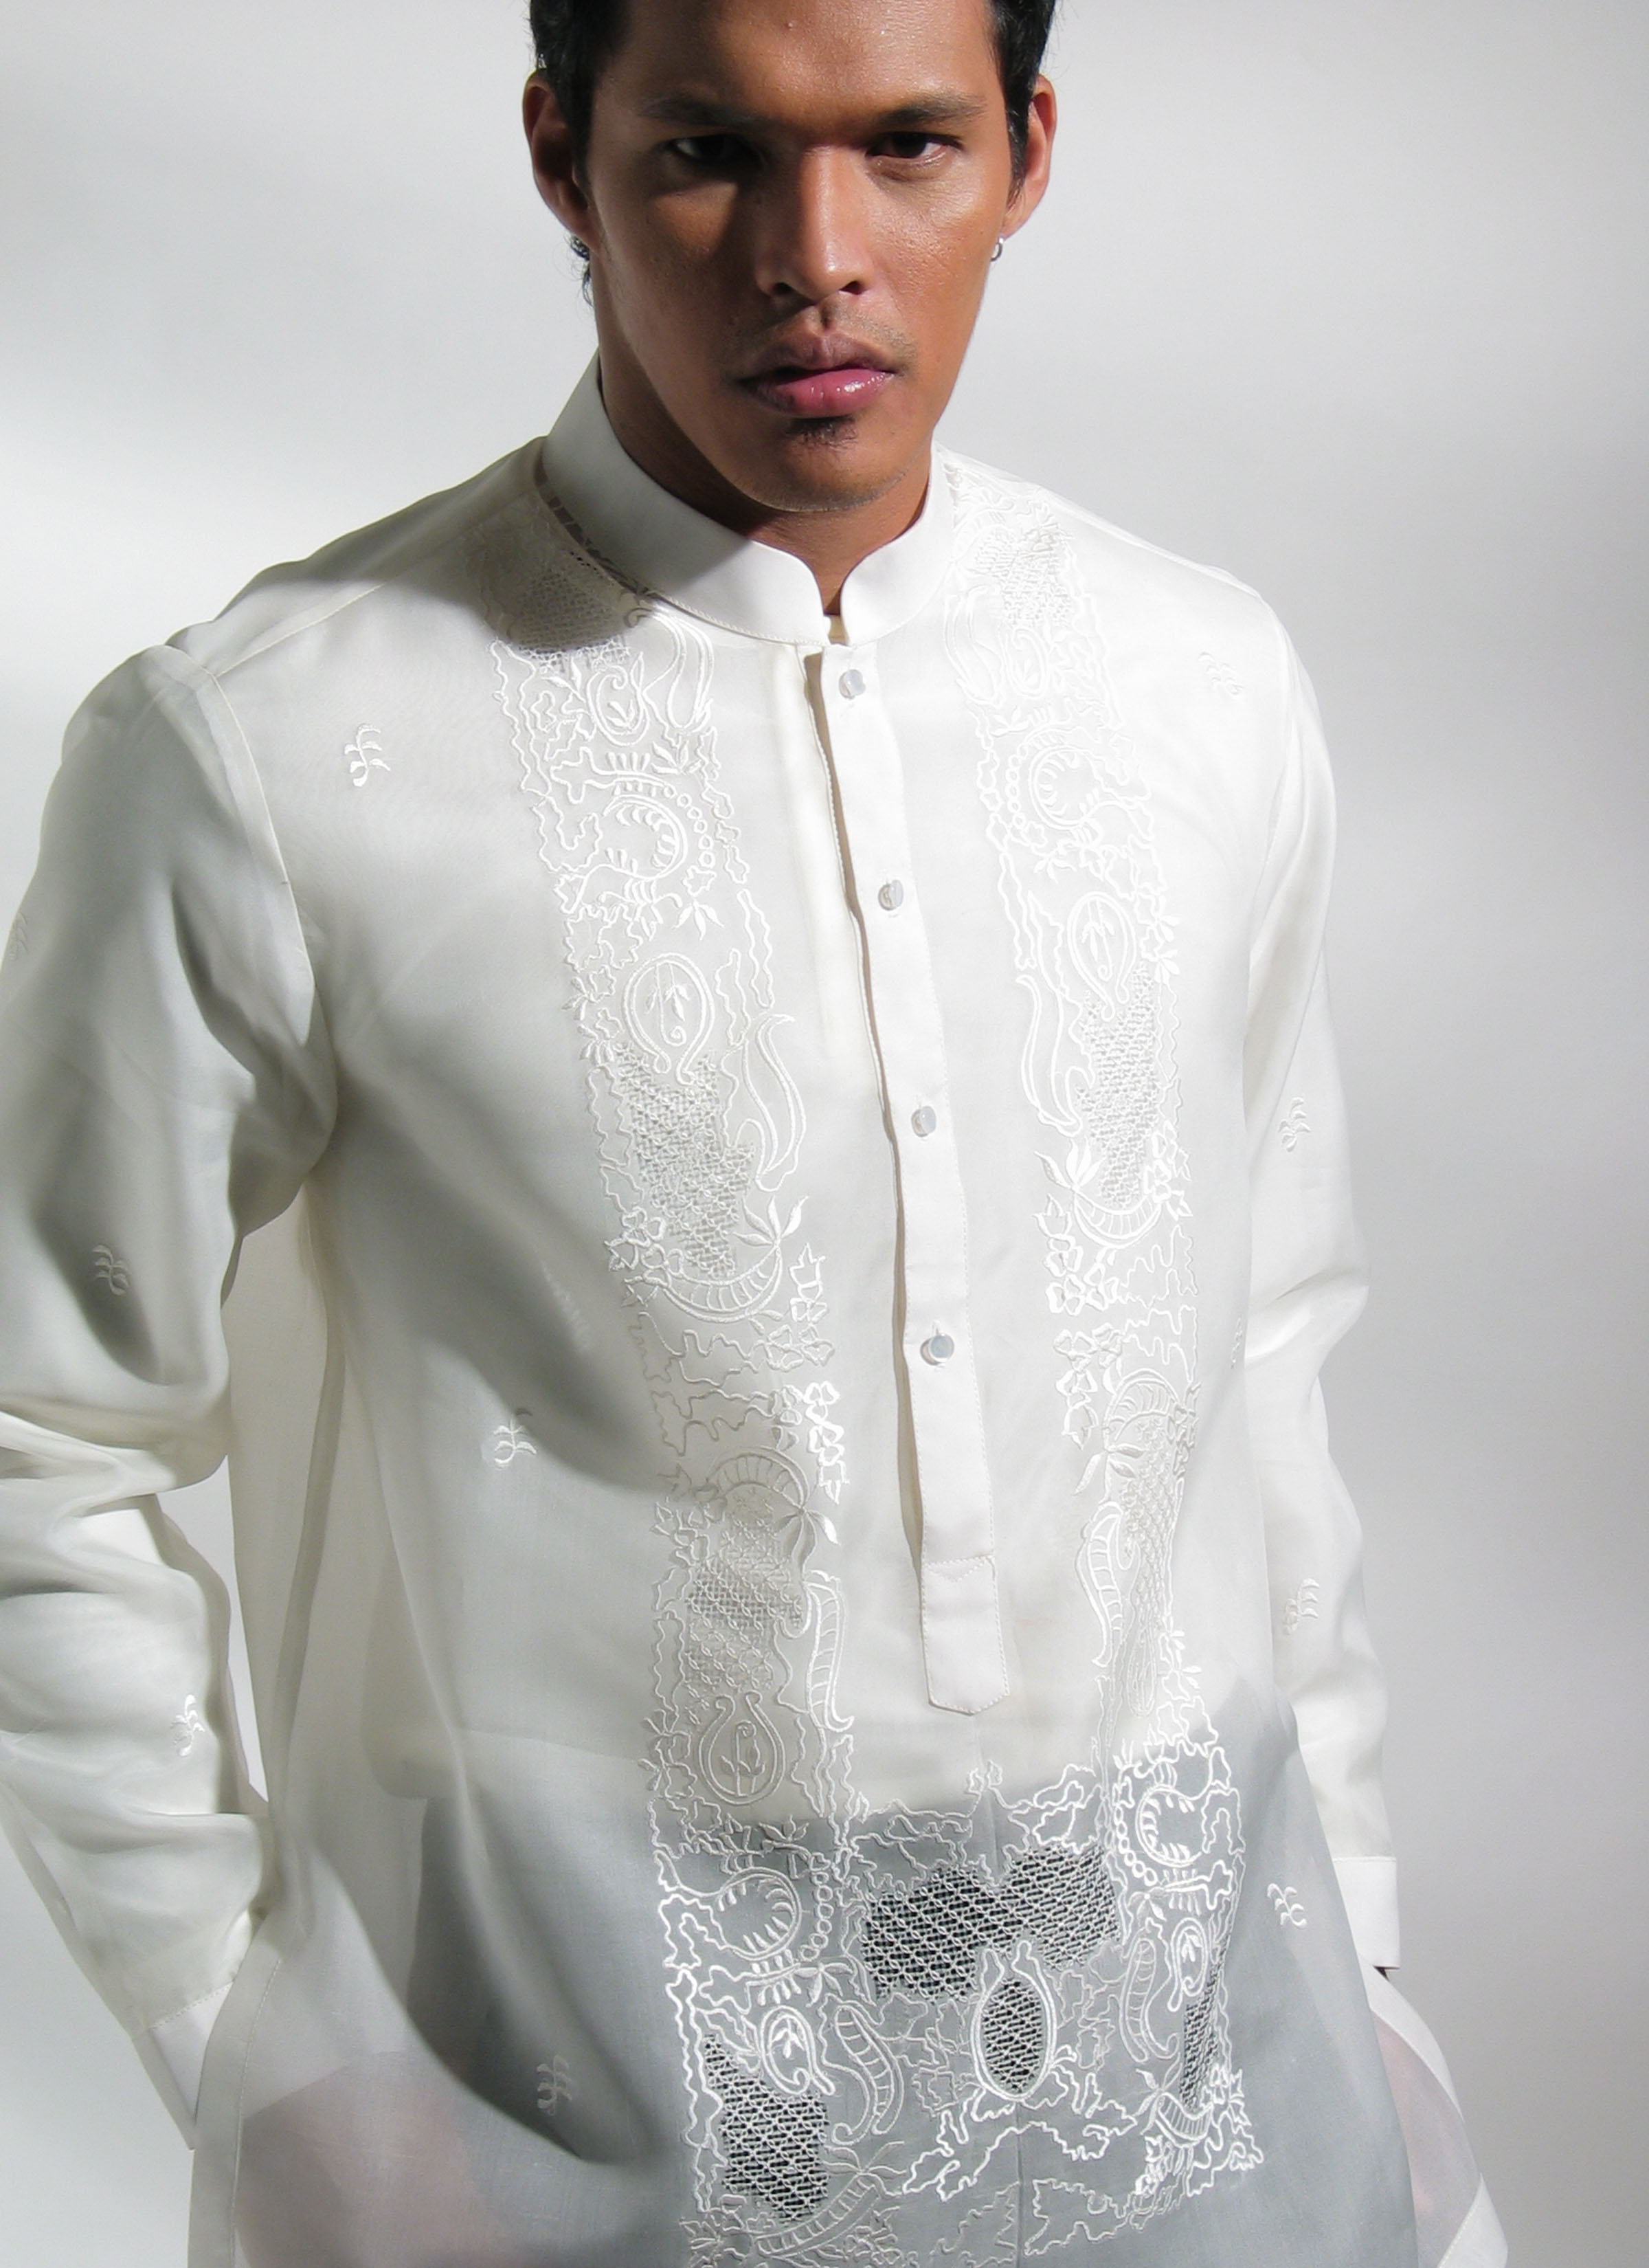 MyBarong created this Custom tailored Barong Tagalog for my wedding